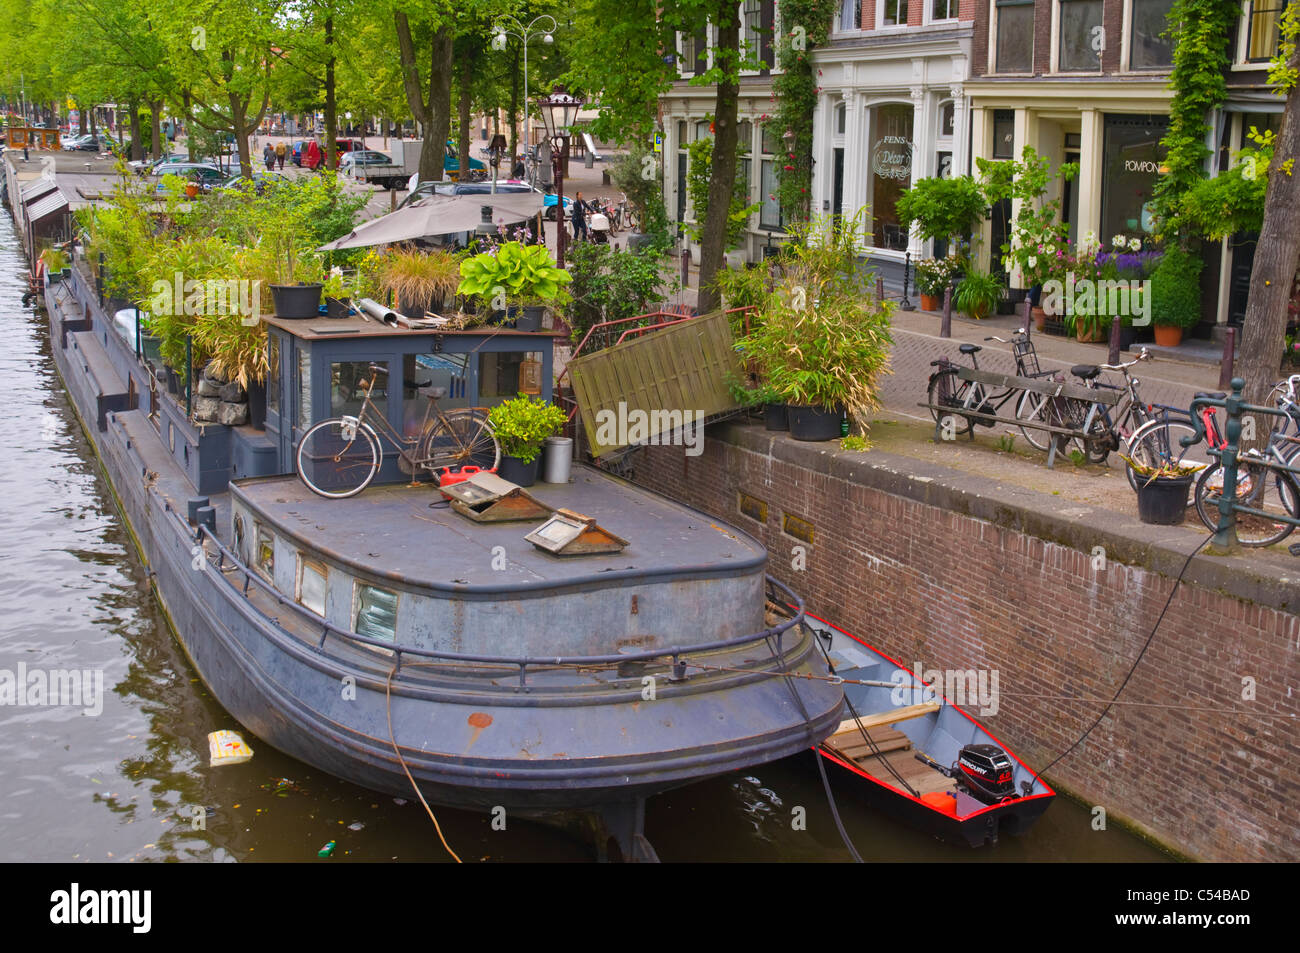 House boat on Prinsengracht canal central Amsterdam the Netherlands Europe - Stock Image